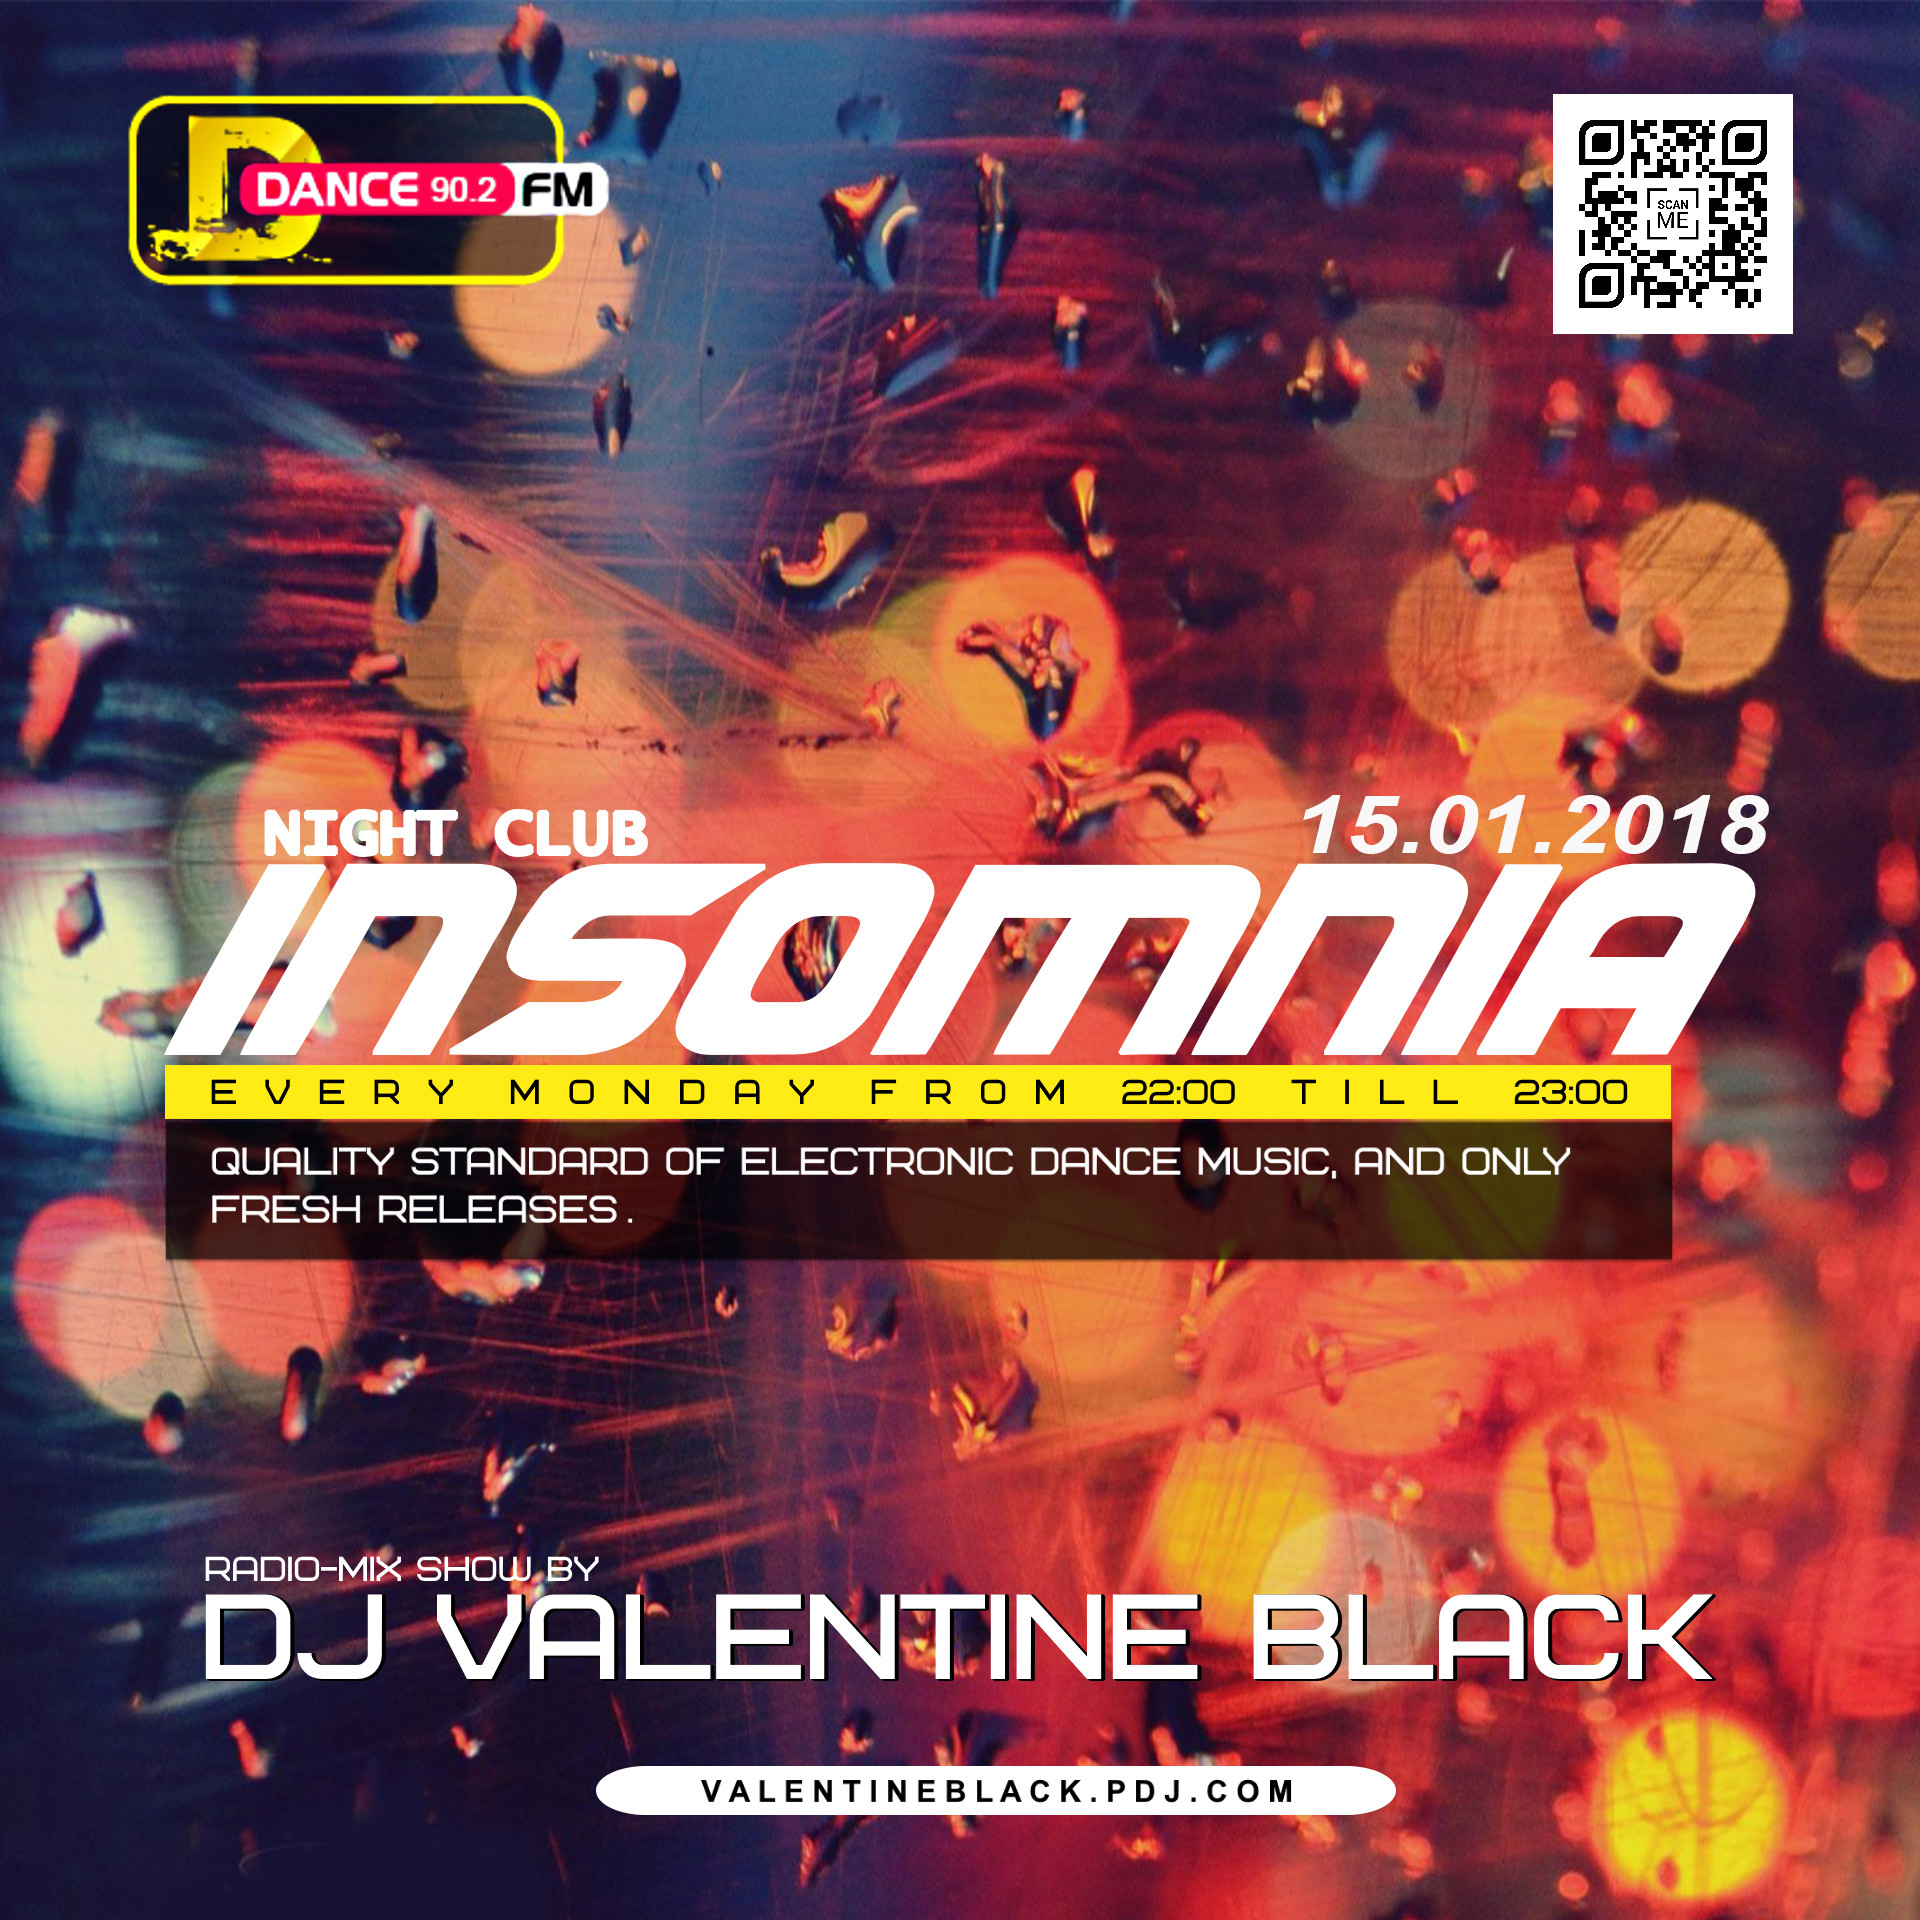 Dfm 90 2 night club insomnia dj for Insomnia house music